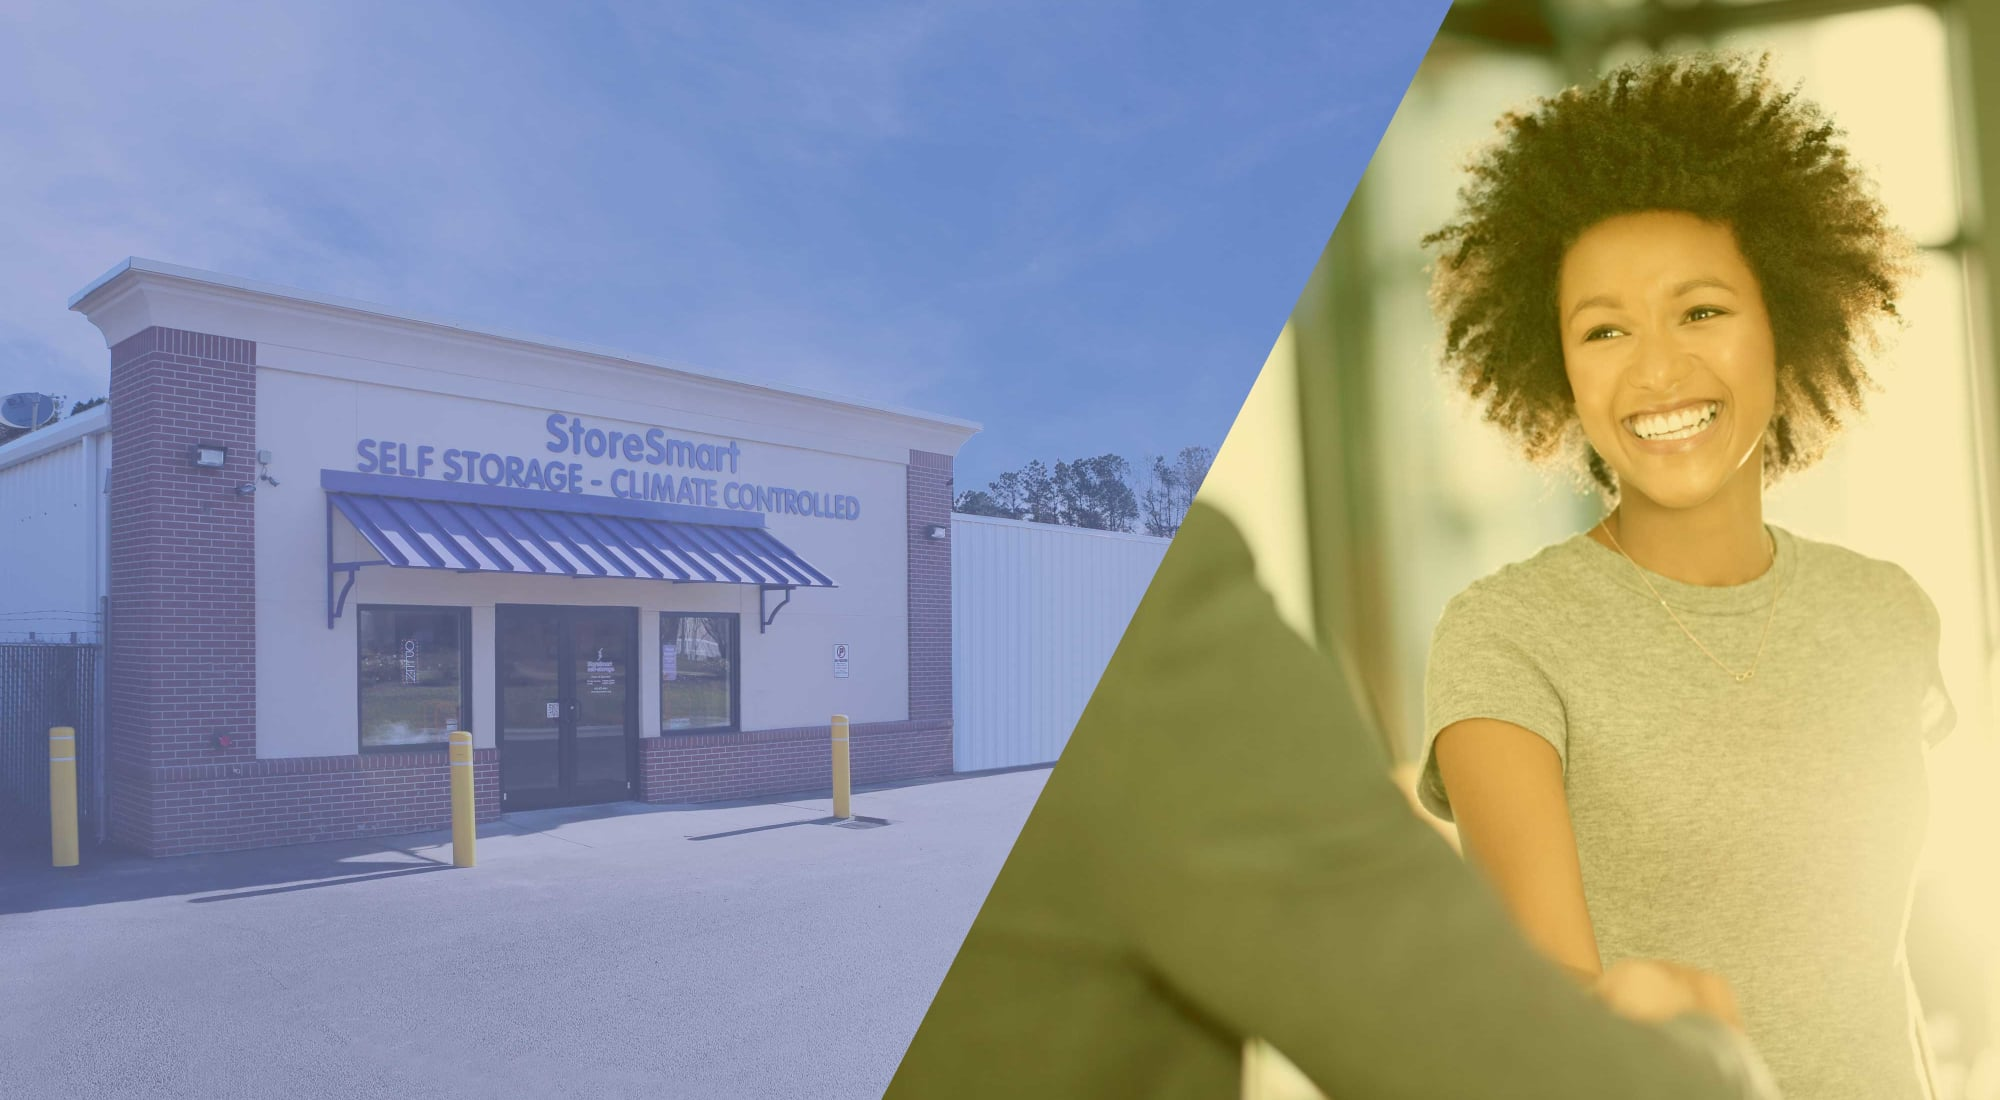 Self storage at StoreSmart Self-Storage in Summerville, South Carolina